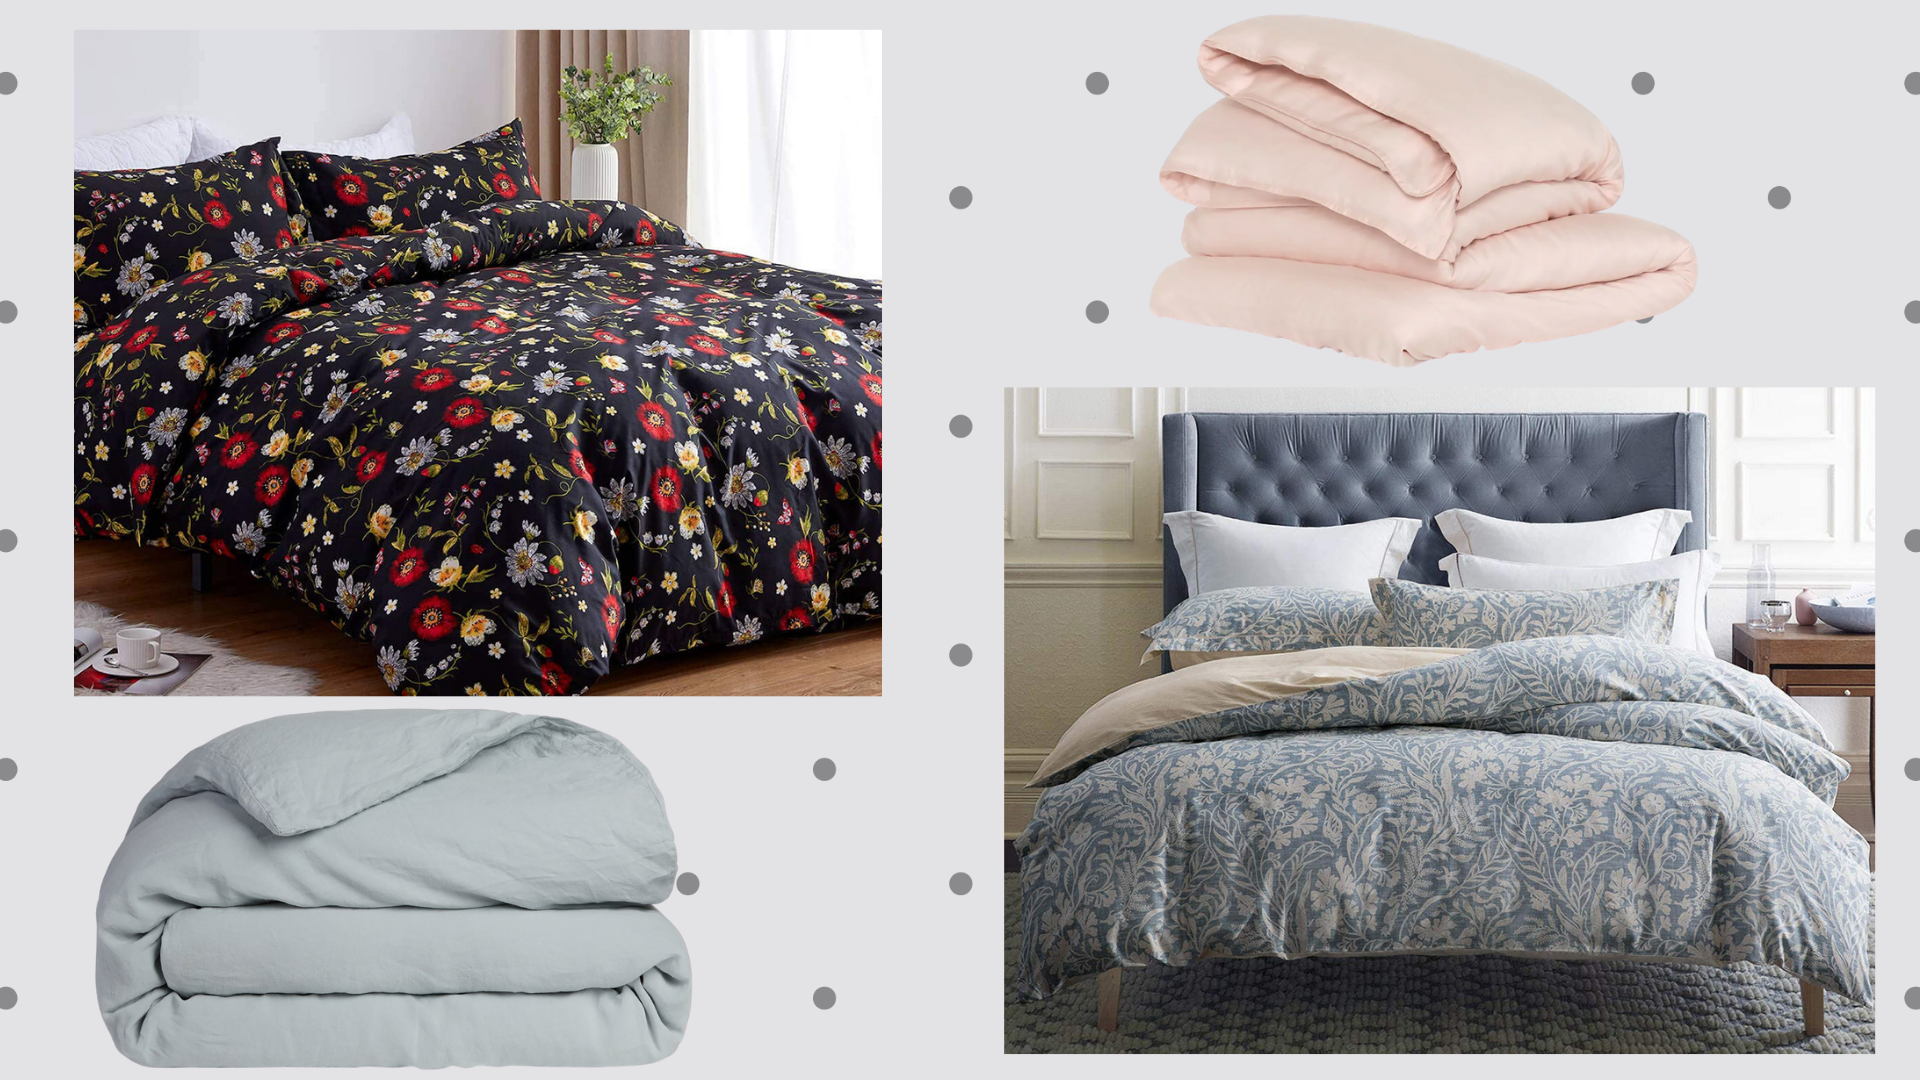 7 Best Duvet Covers To Keep You Cozy All Winter Long